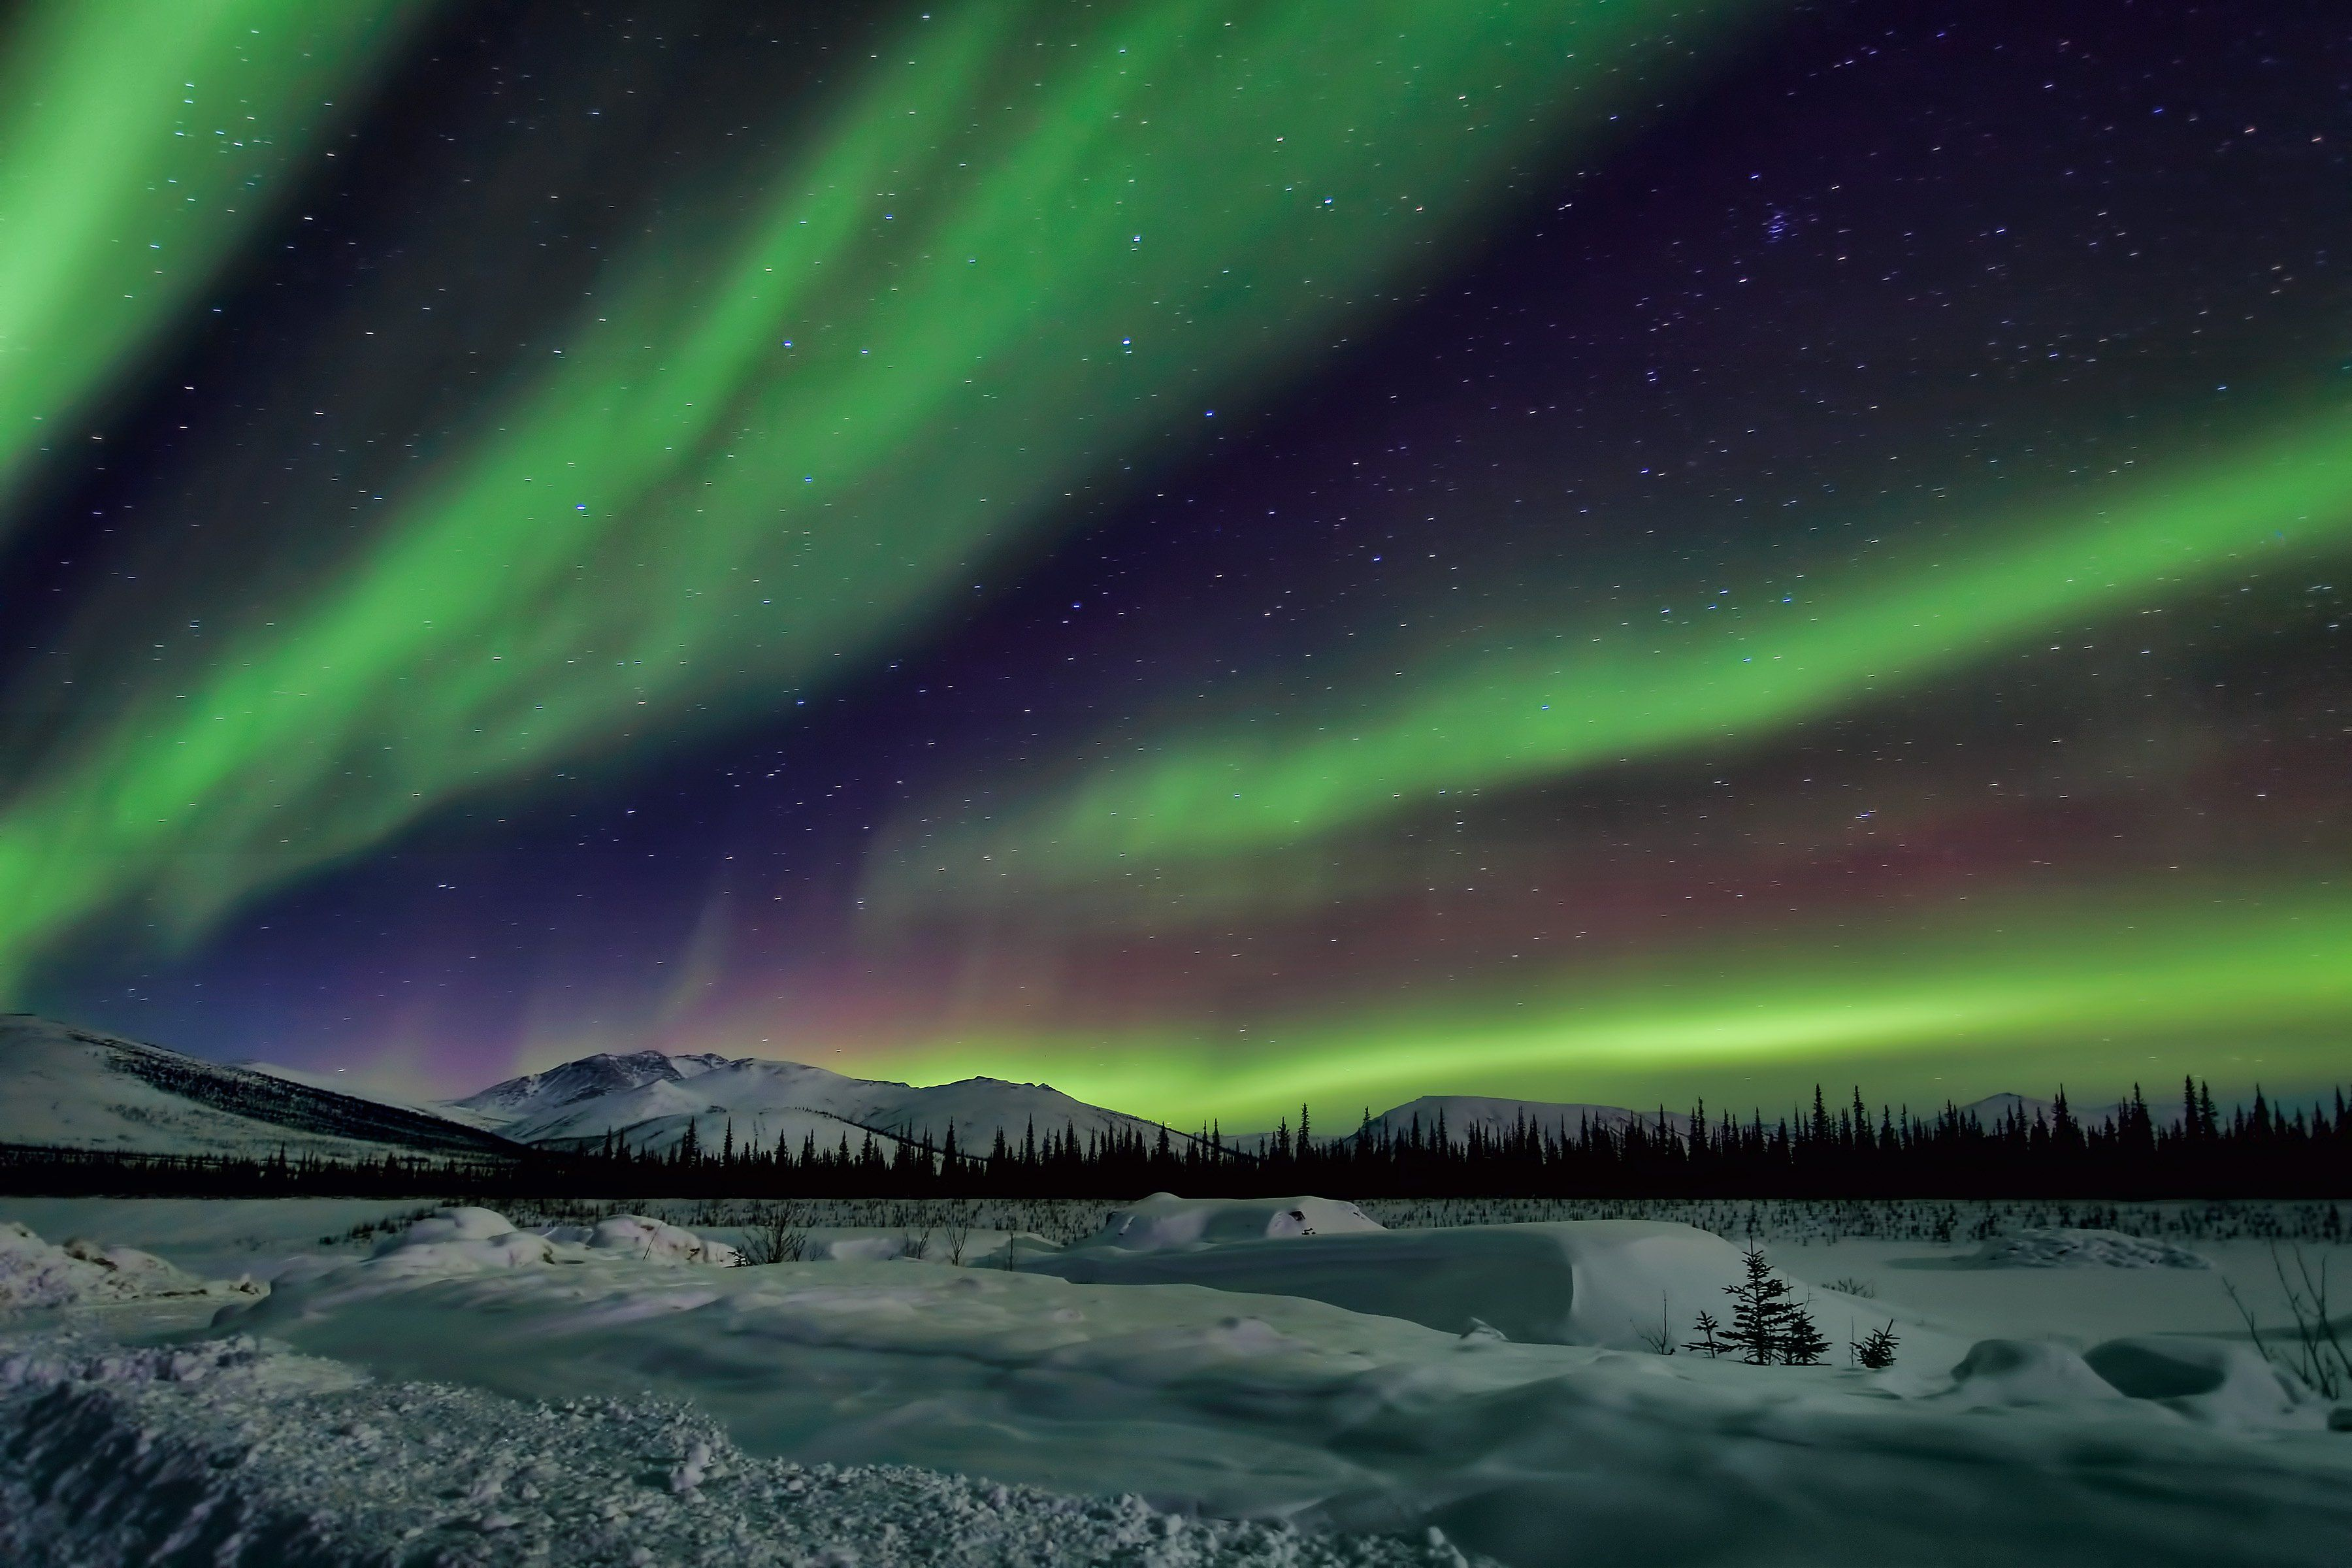 Northern Lights Wallpaper 4K - WallpaperSafari